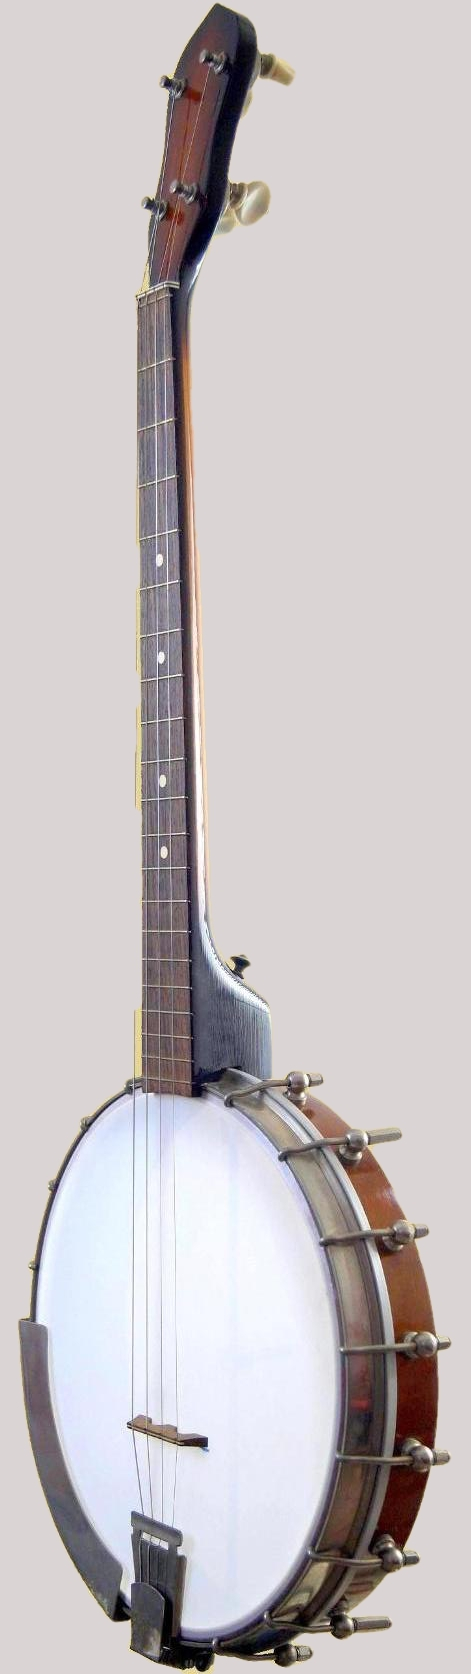 musima 4 string 19 fret tenor banjo at Ukulele Corner